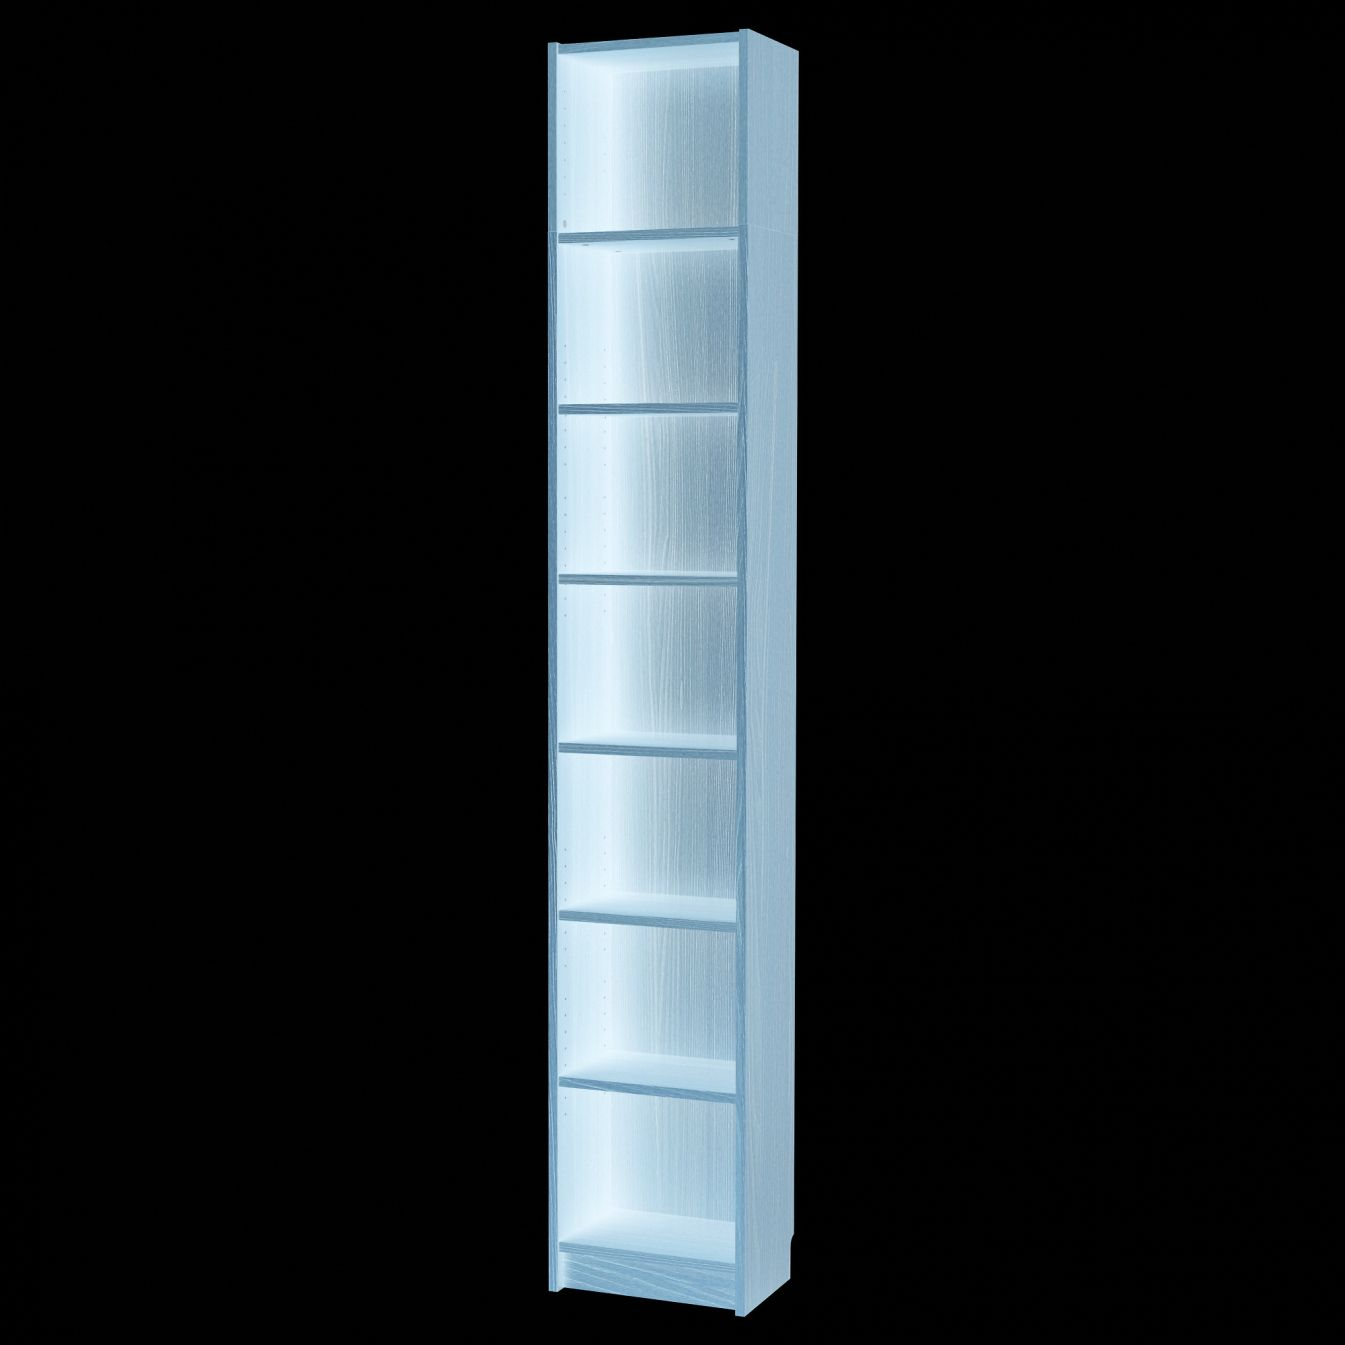 10 Inch Wide Bookcase Best Way To Paint Wood Furniture Check More At Http